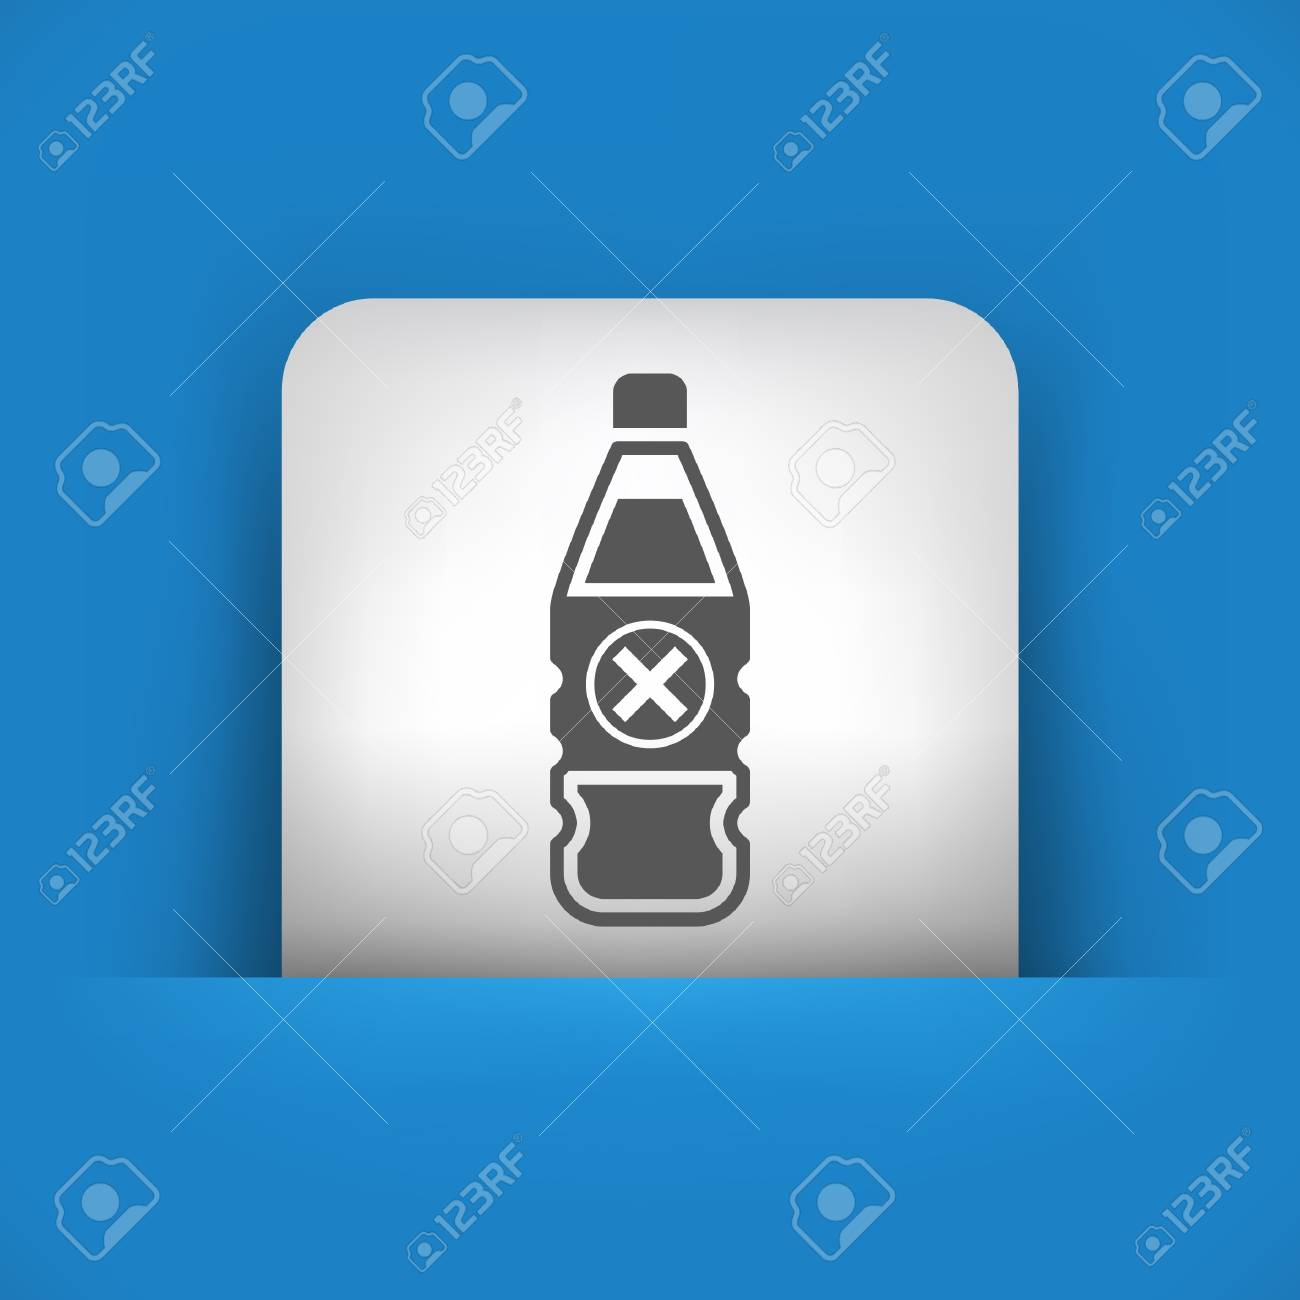 Vector illustration of single blue and gray isolated icon. Stock Vector - 17782792